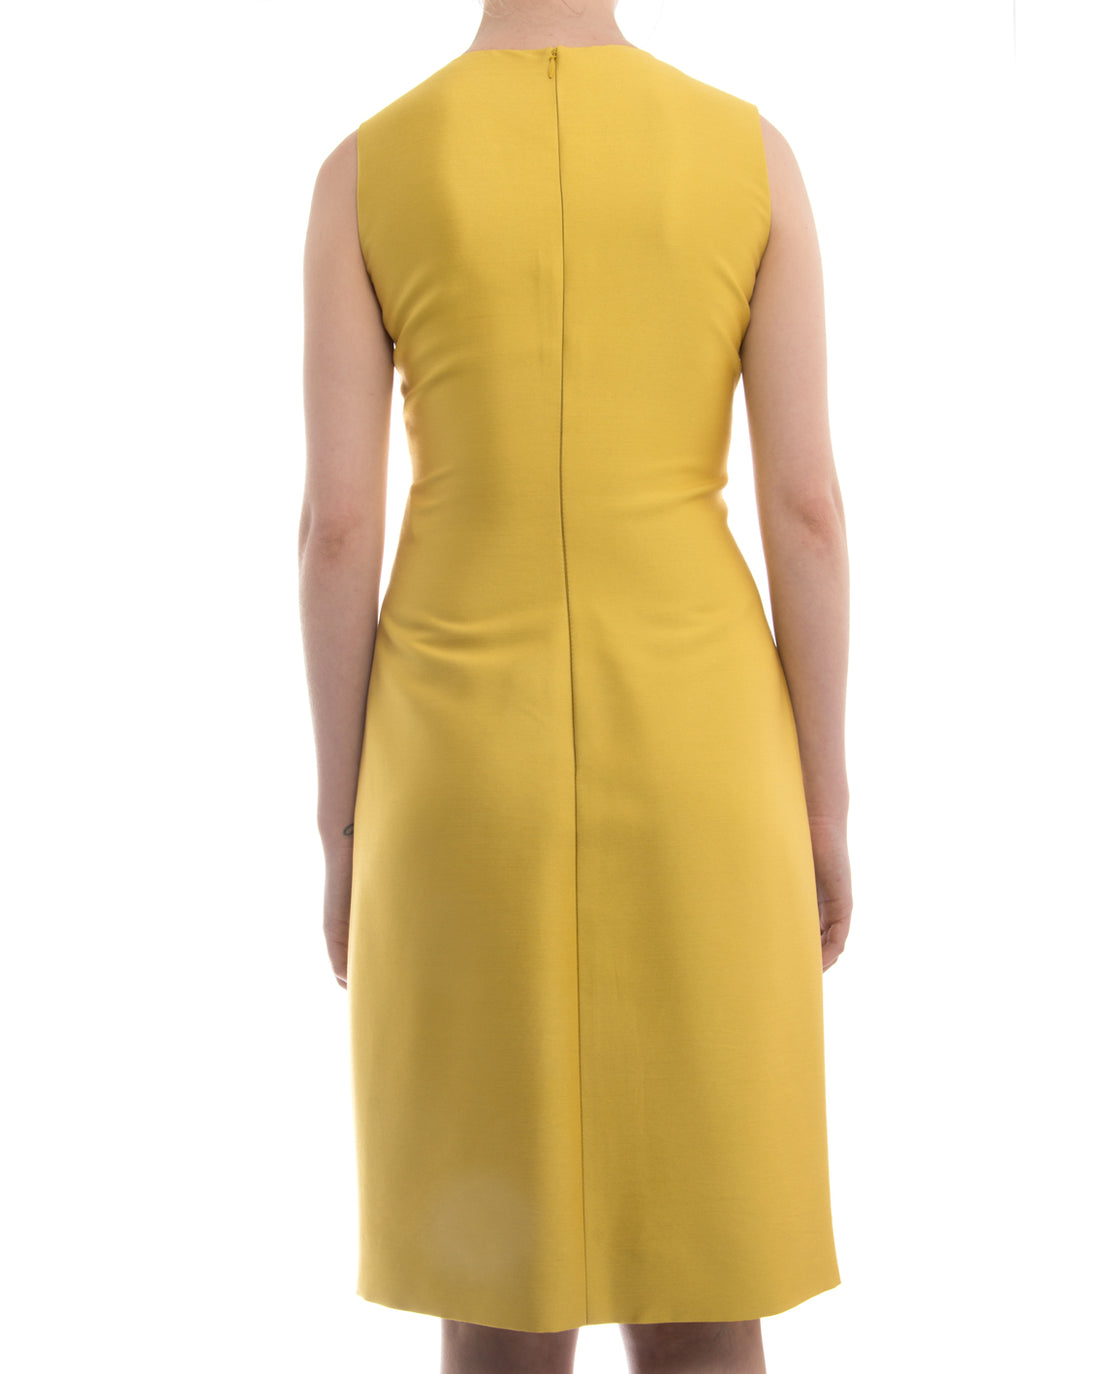 Valentino Chartreuse Yellow Pleated Cocktail Dress - 4 / 6